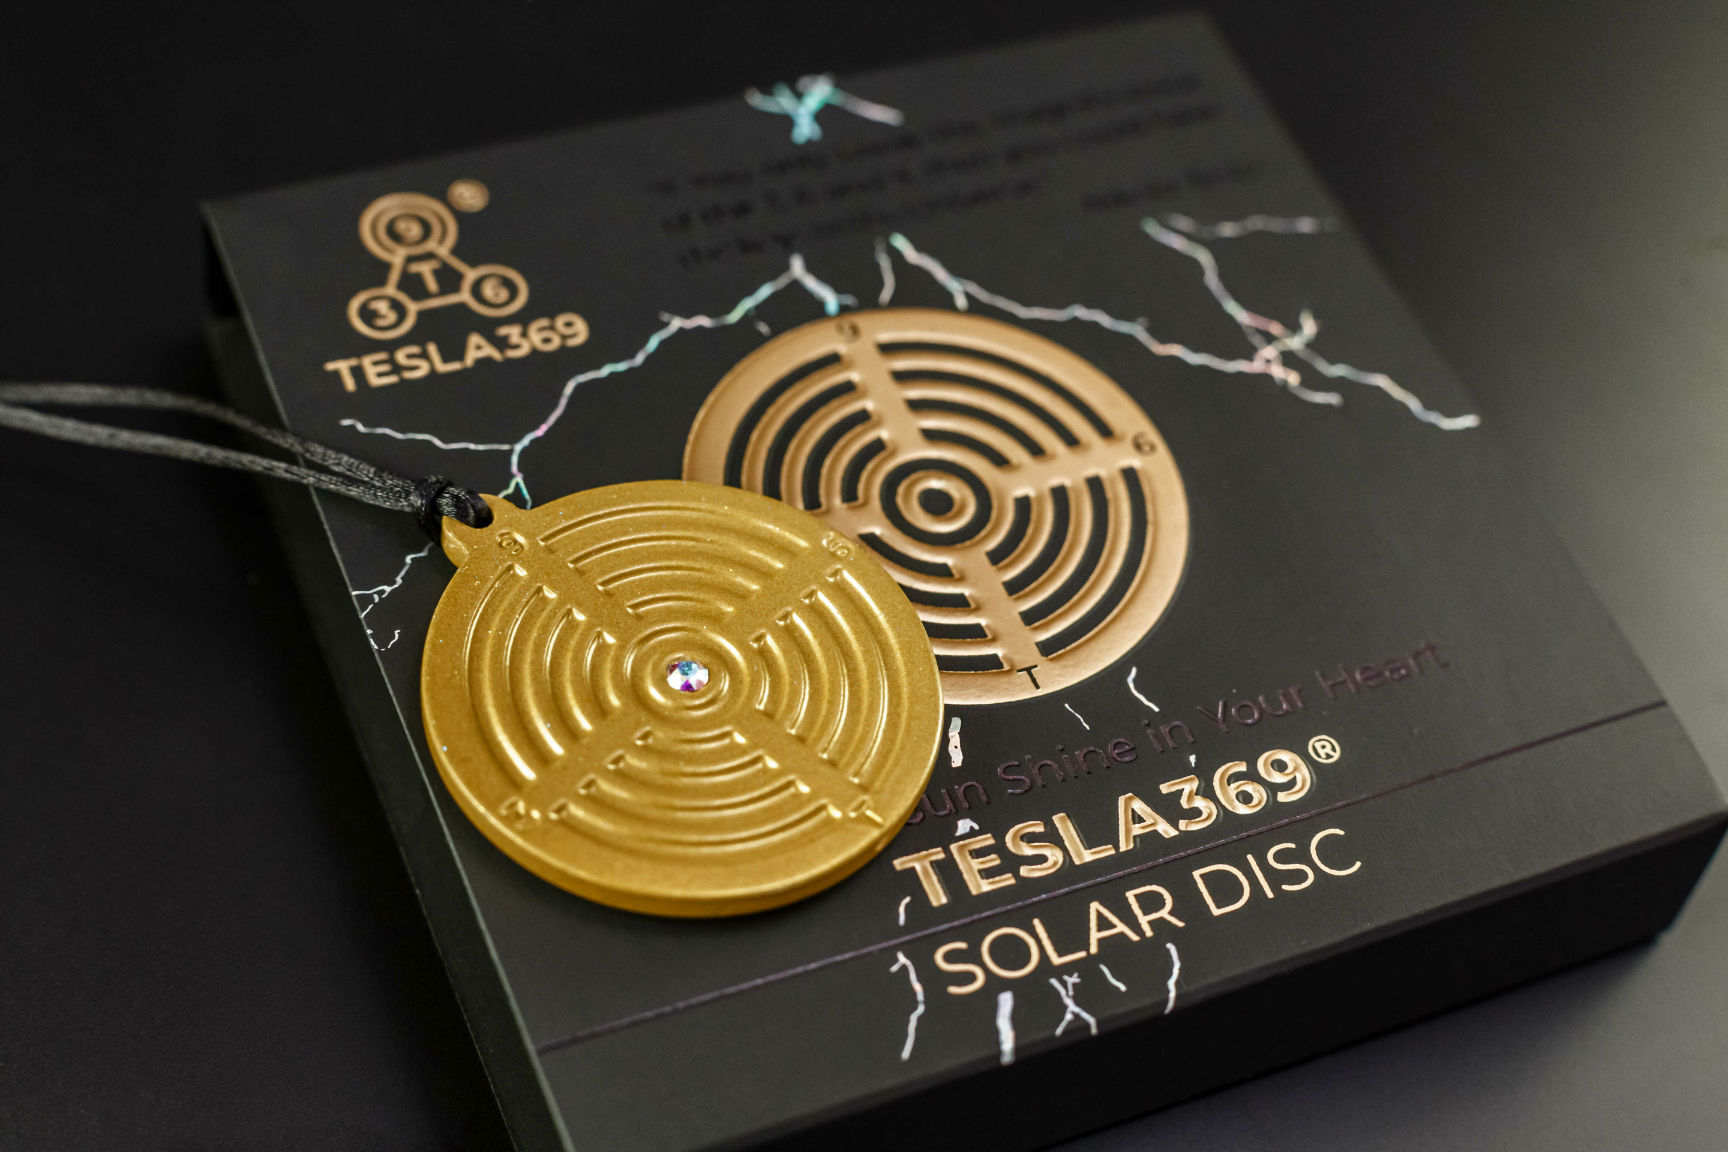 Tesla Solar Disc NEW Front on the Box 2